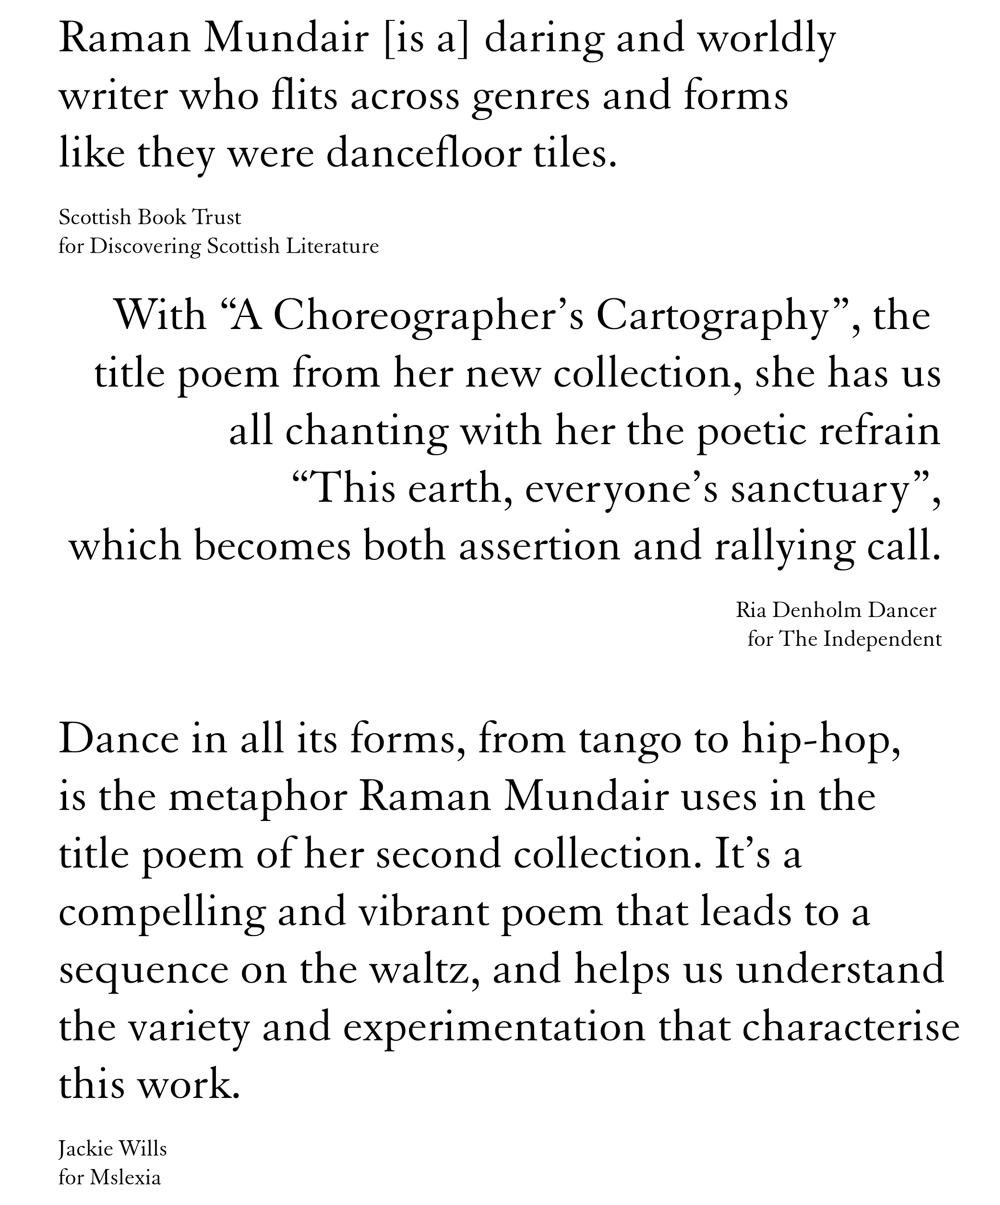 A Choreographer's Cartography by Raman Mundair - endorsement quotes